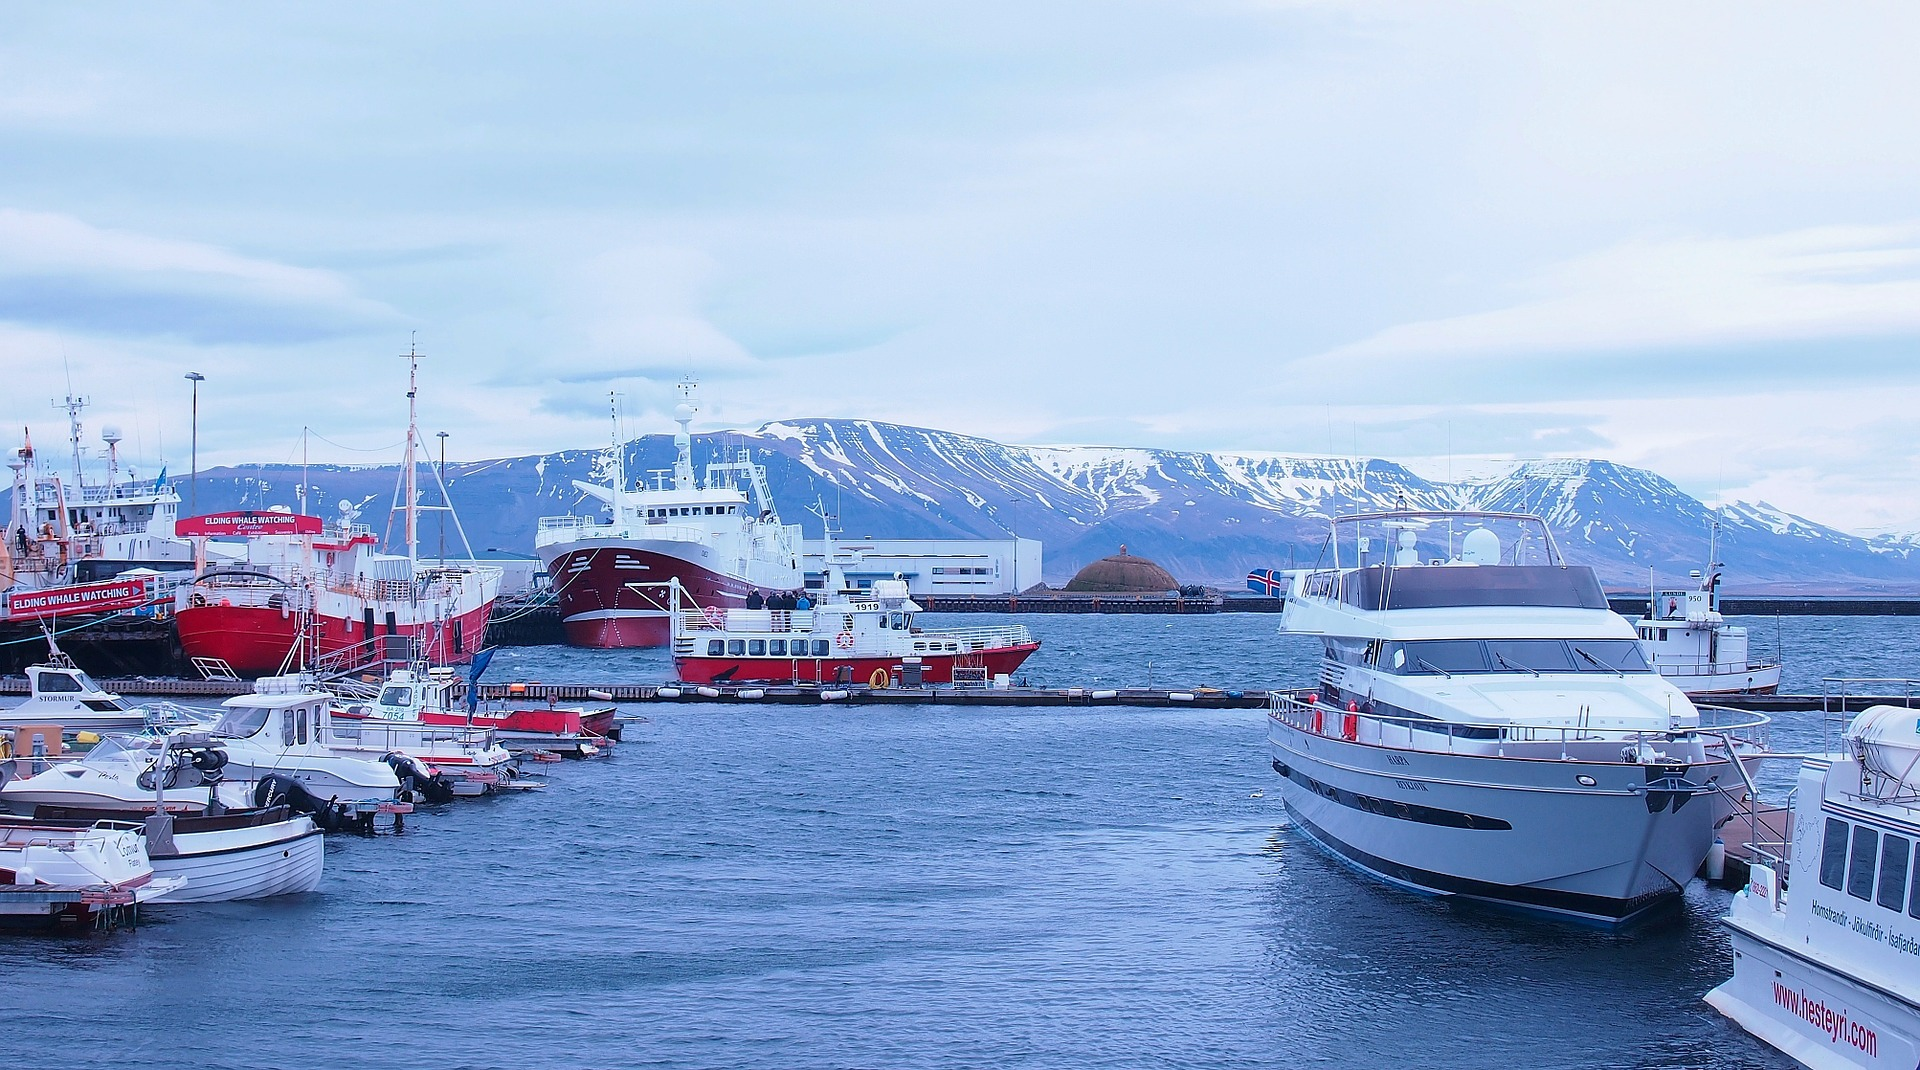 Reykjavik old harbor, boats, water and mountains on the background